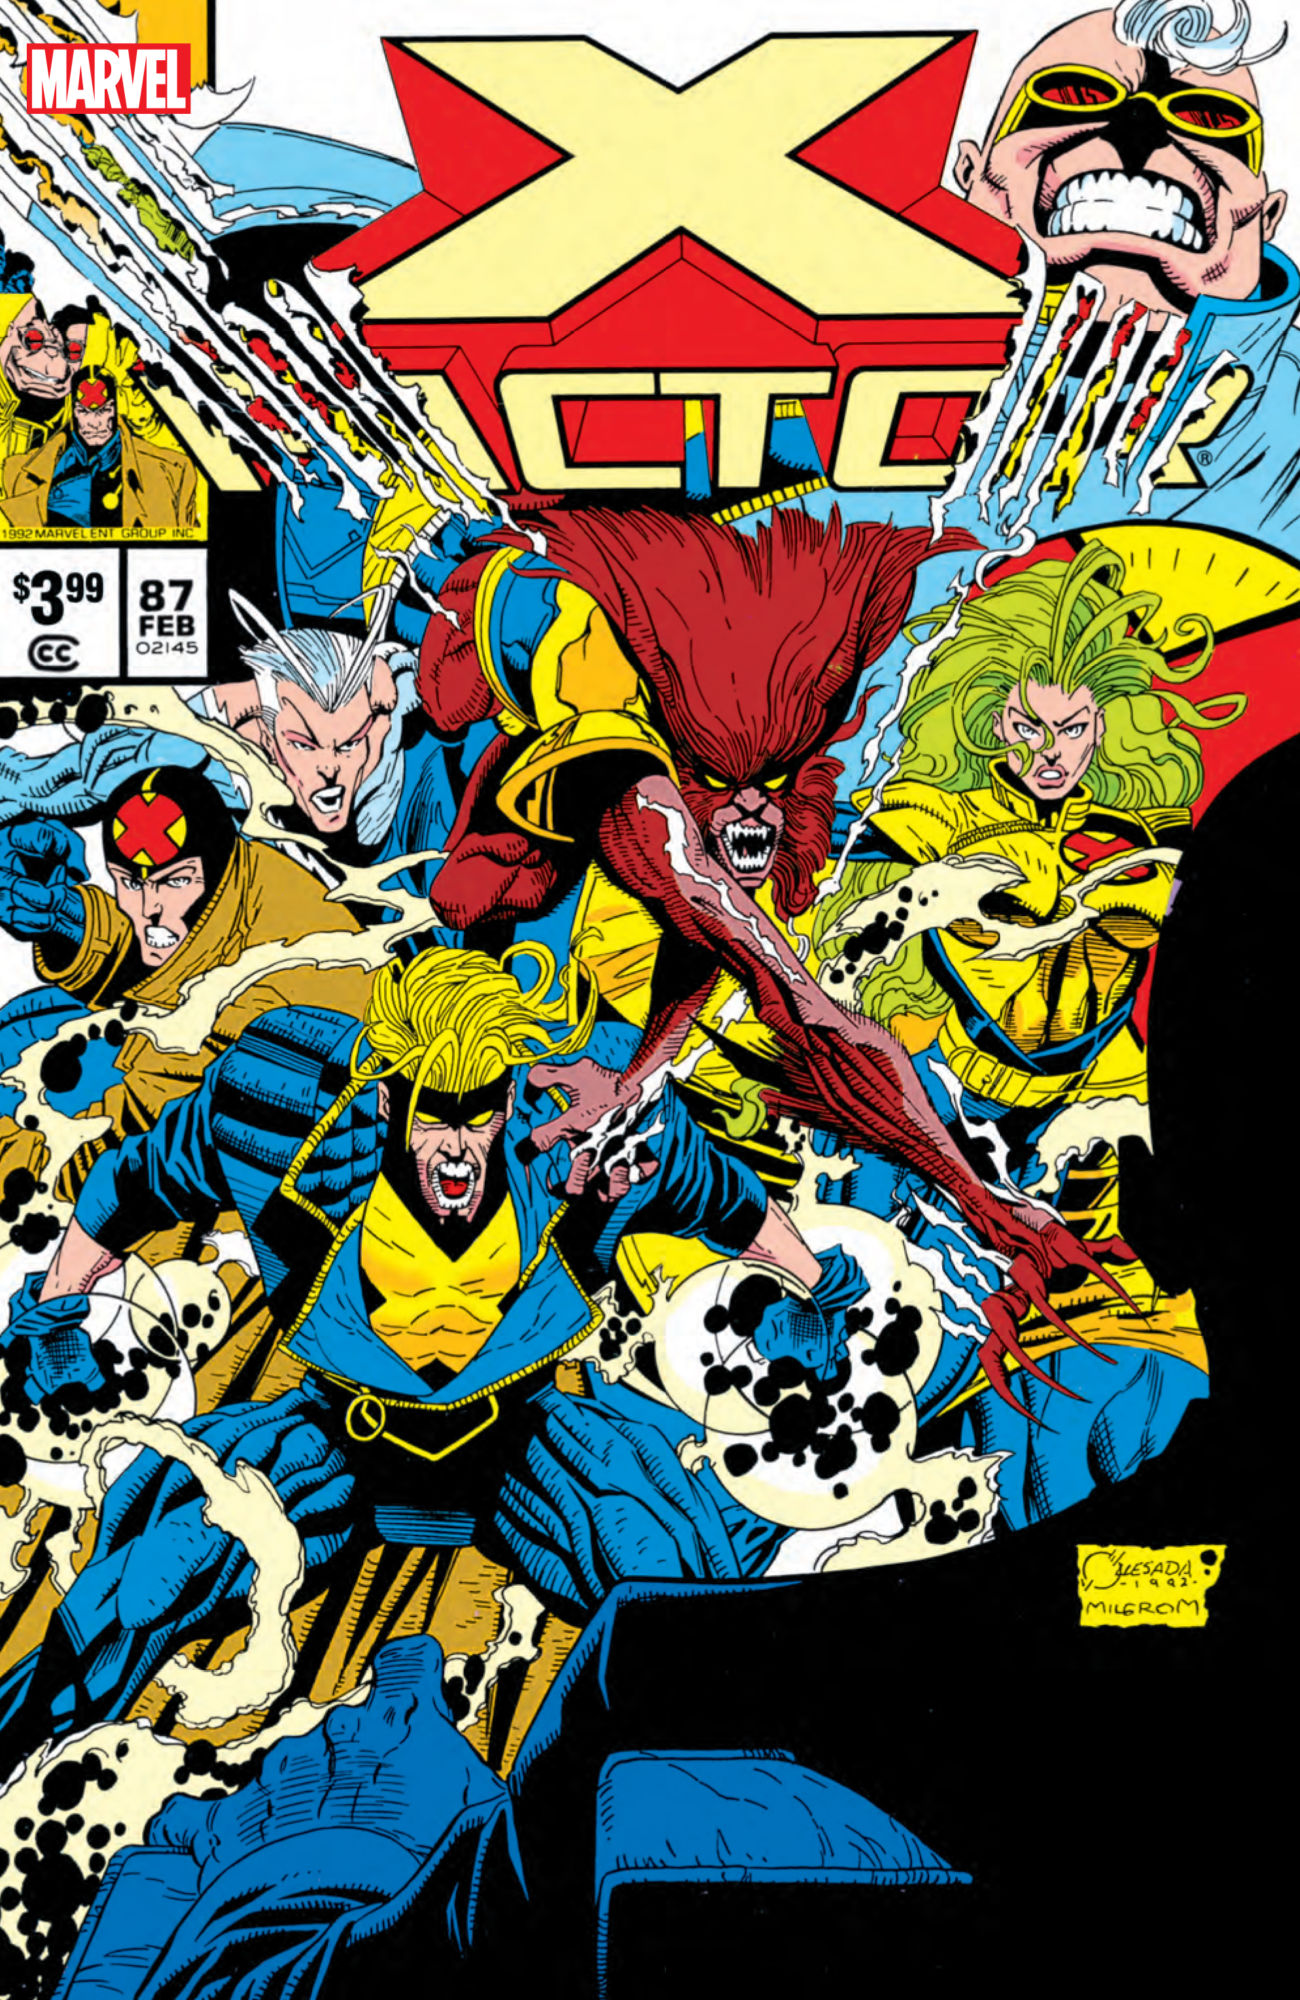 Some Classic 90s Comic Book Ads From X-Factor #87 Facsimile Edition [Preview]